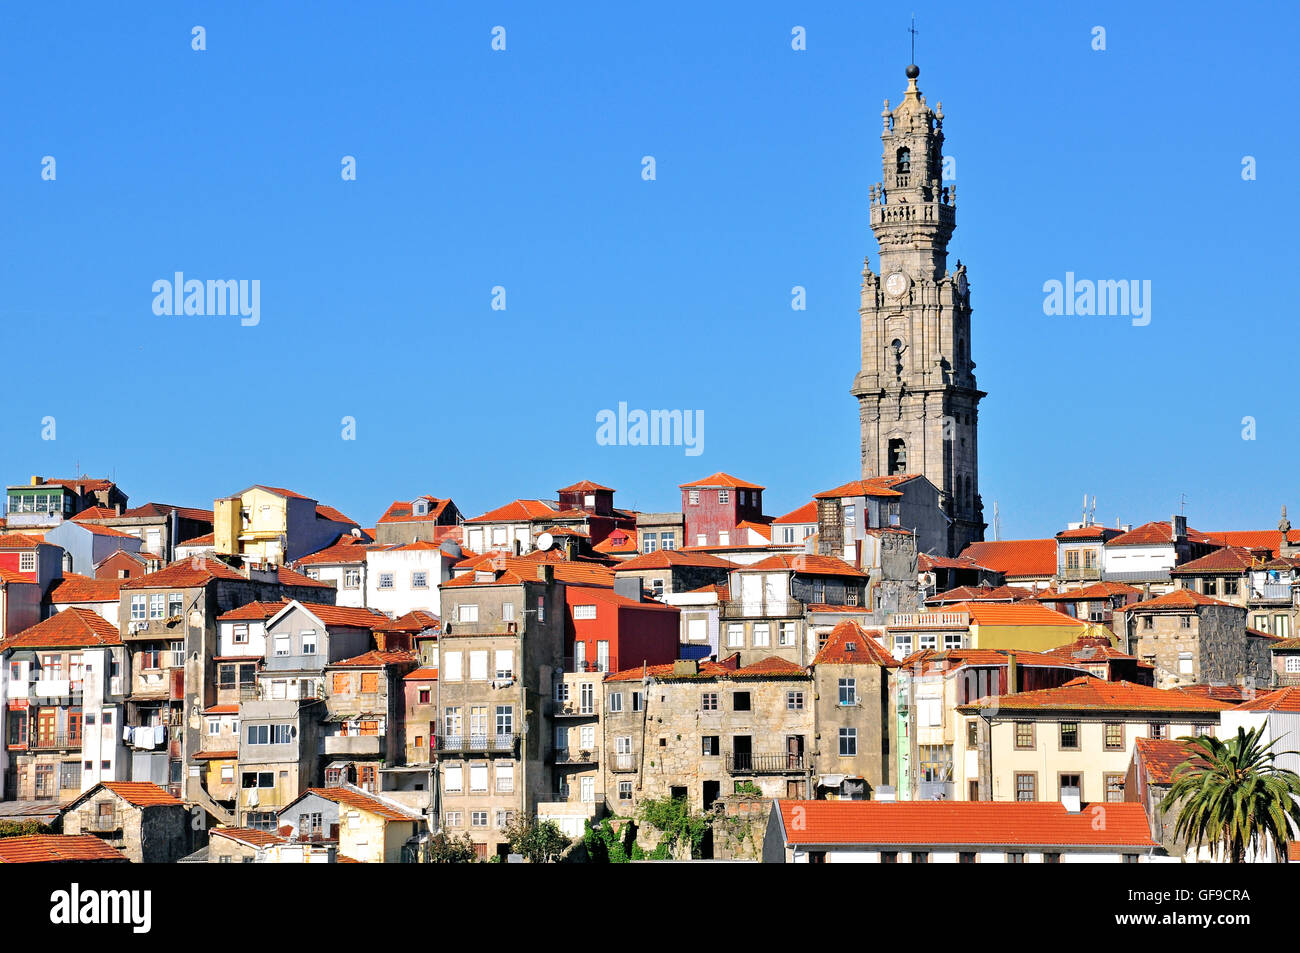 Bell tower and old town of Oporto, Portugal - Stock Image